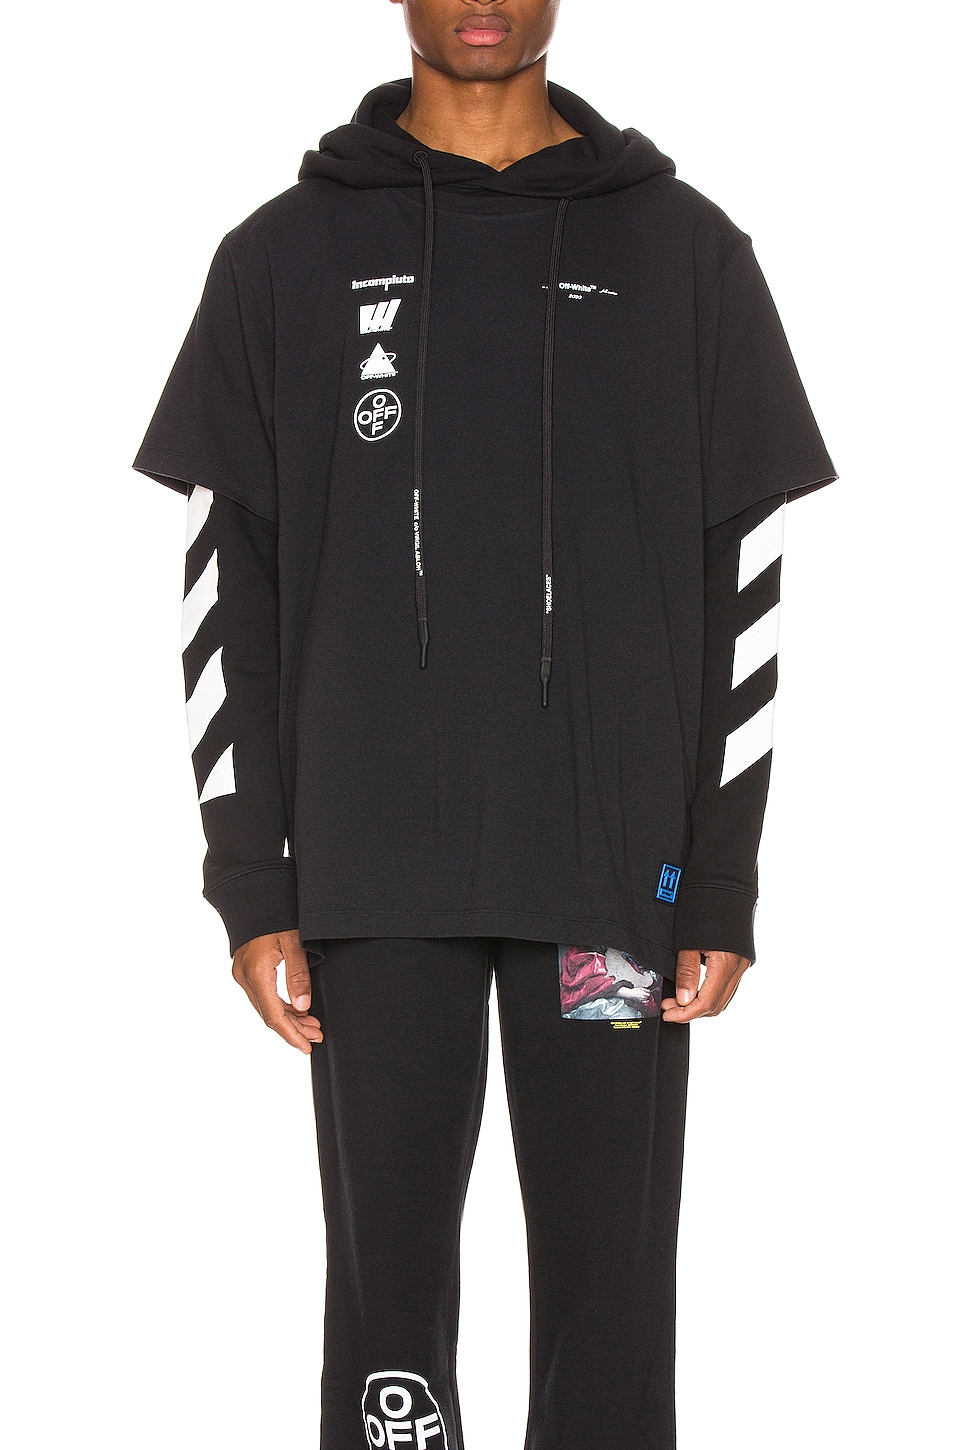 OFF-WHITE Diag Mariana Hooded Double Tee in Black Multi